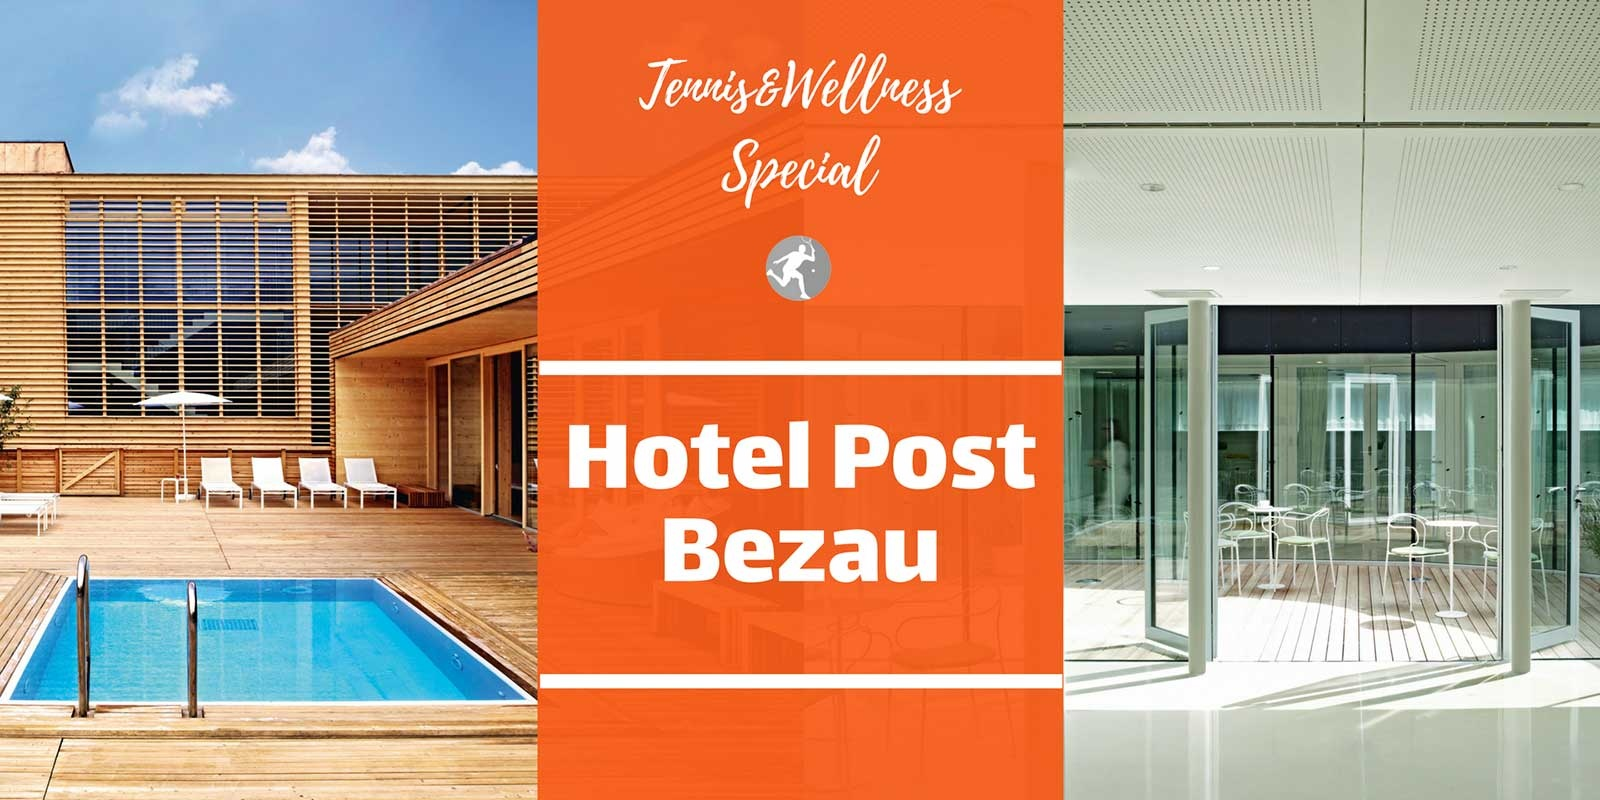 Tennis & Wellness im Hotel Post Bezau Bild 1